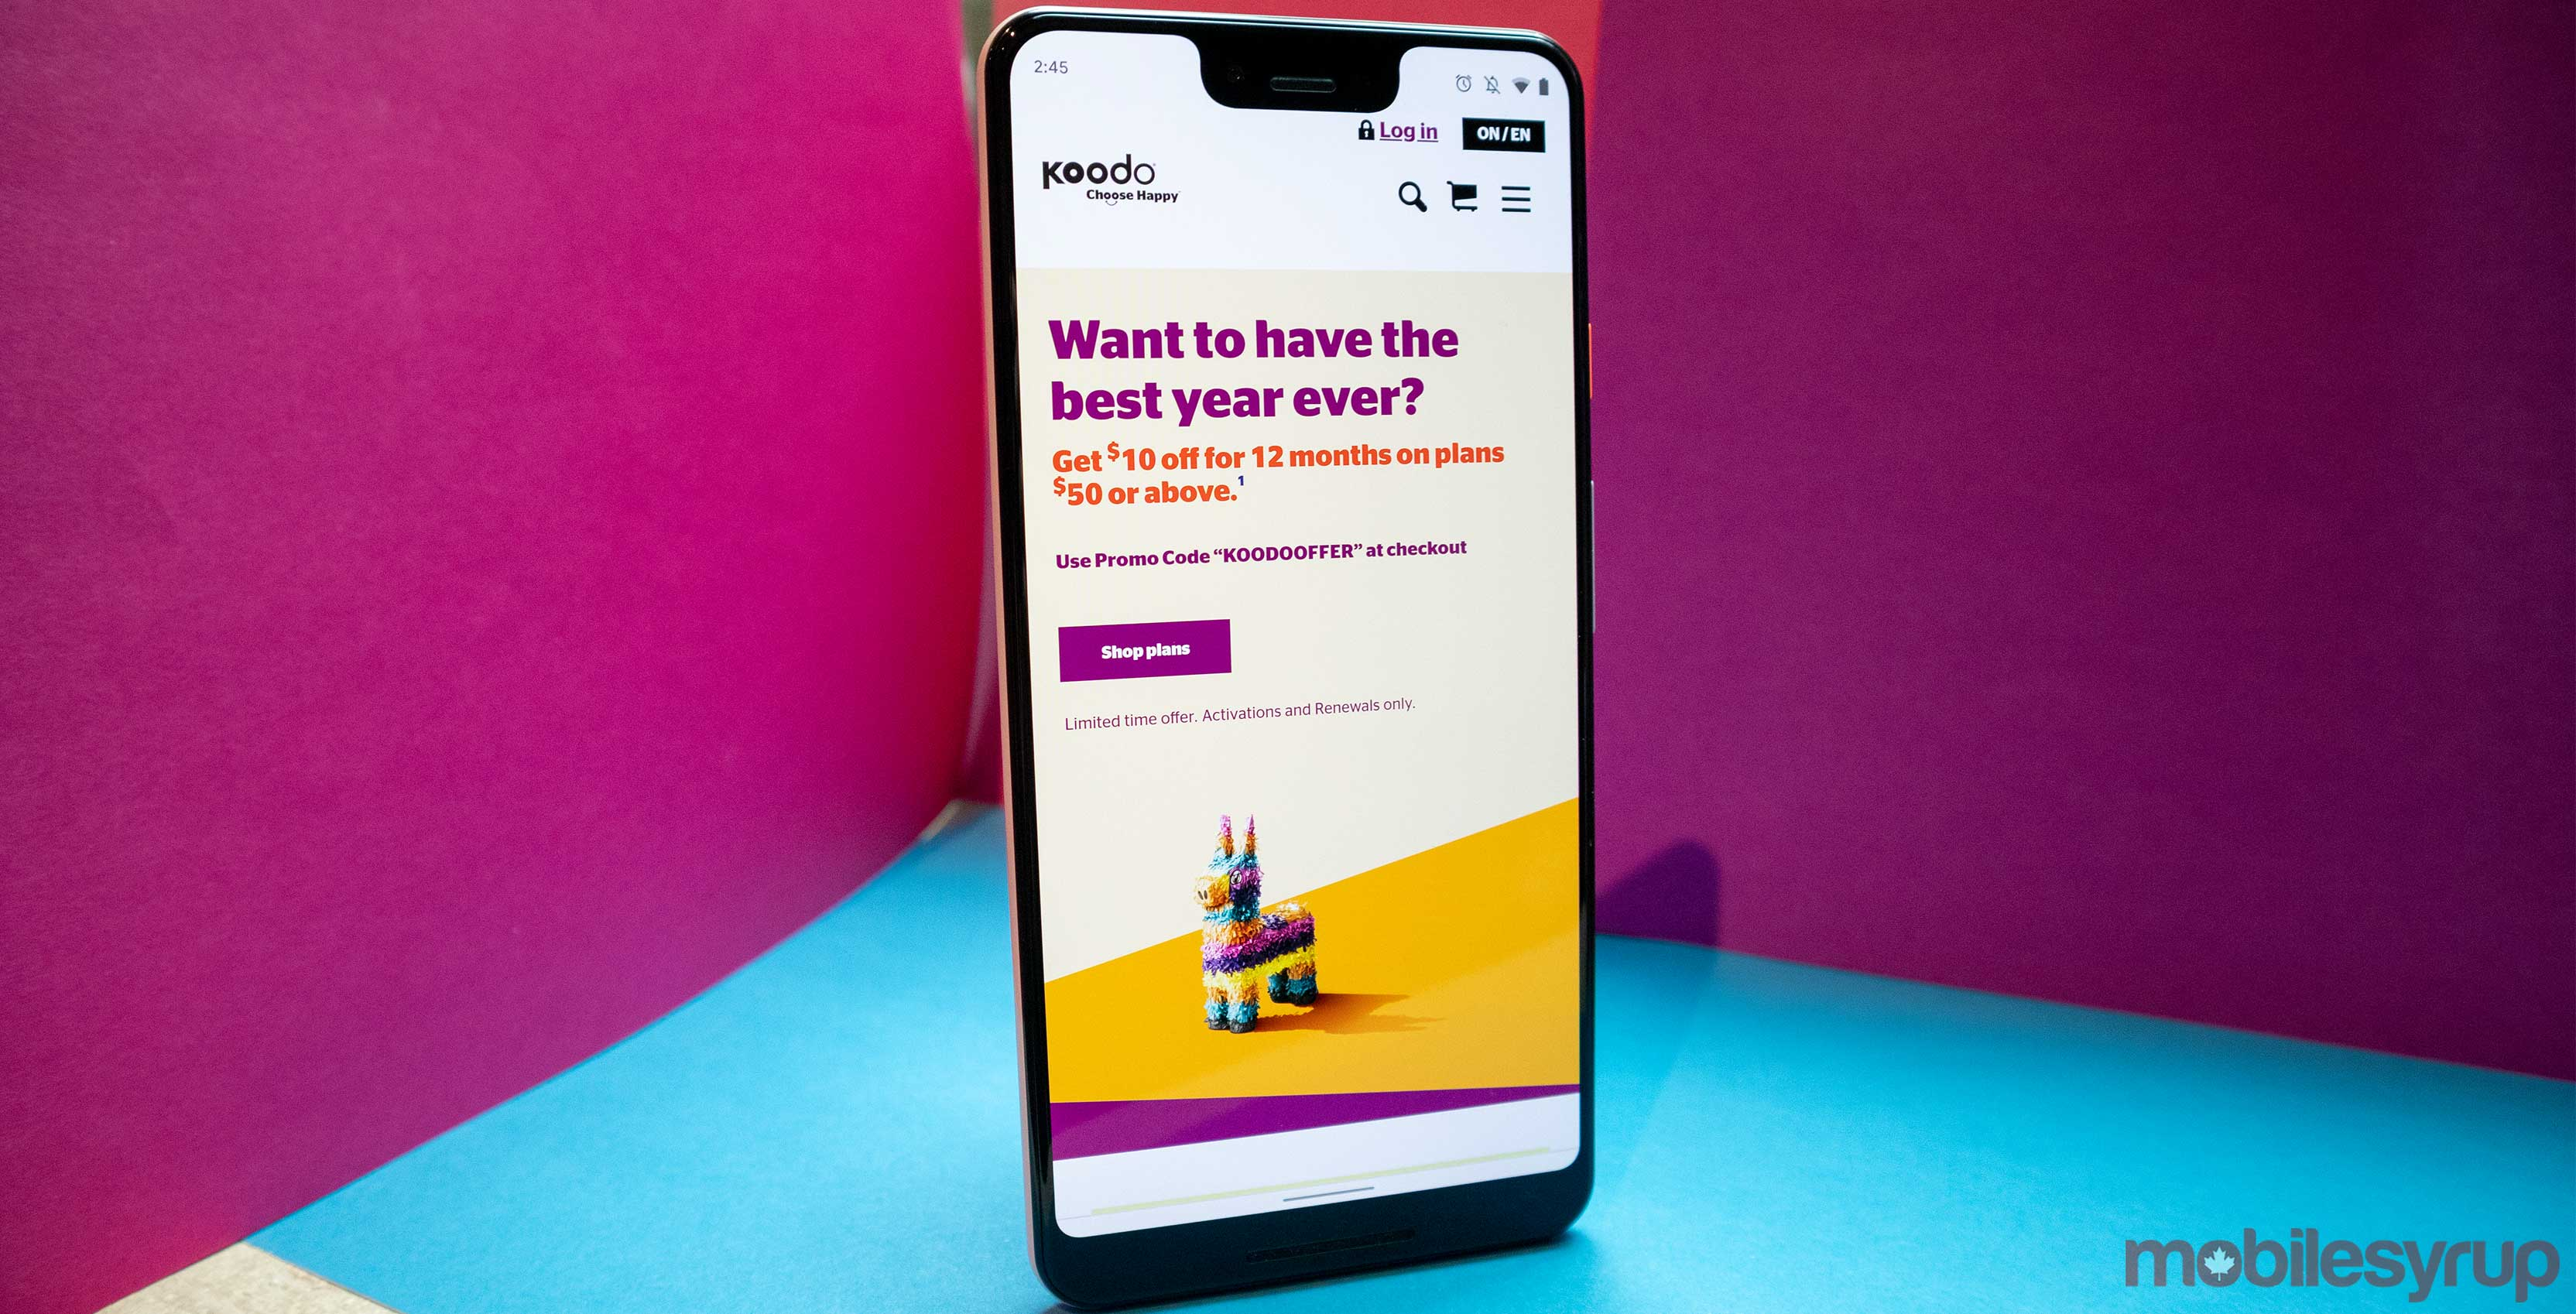 Koodo offering $10 off every plan over $50 for a year with